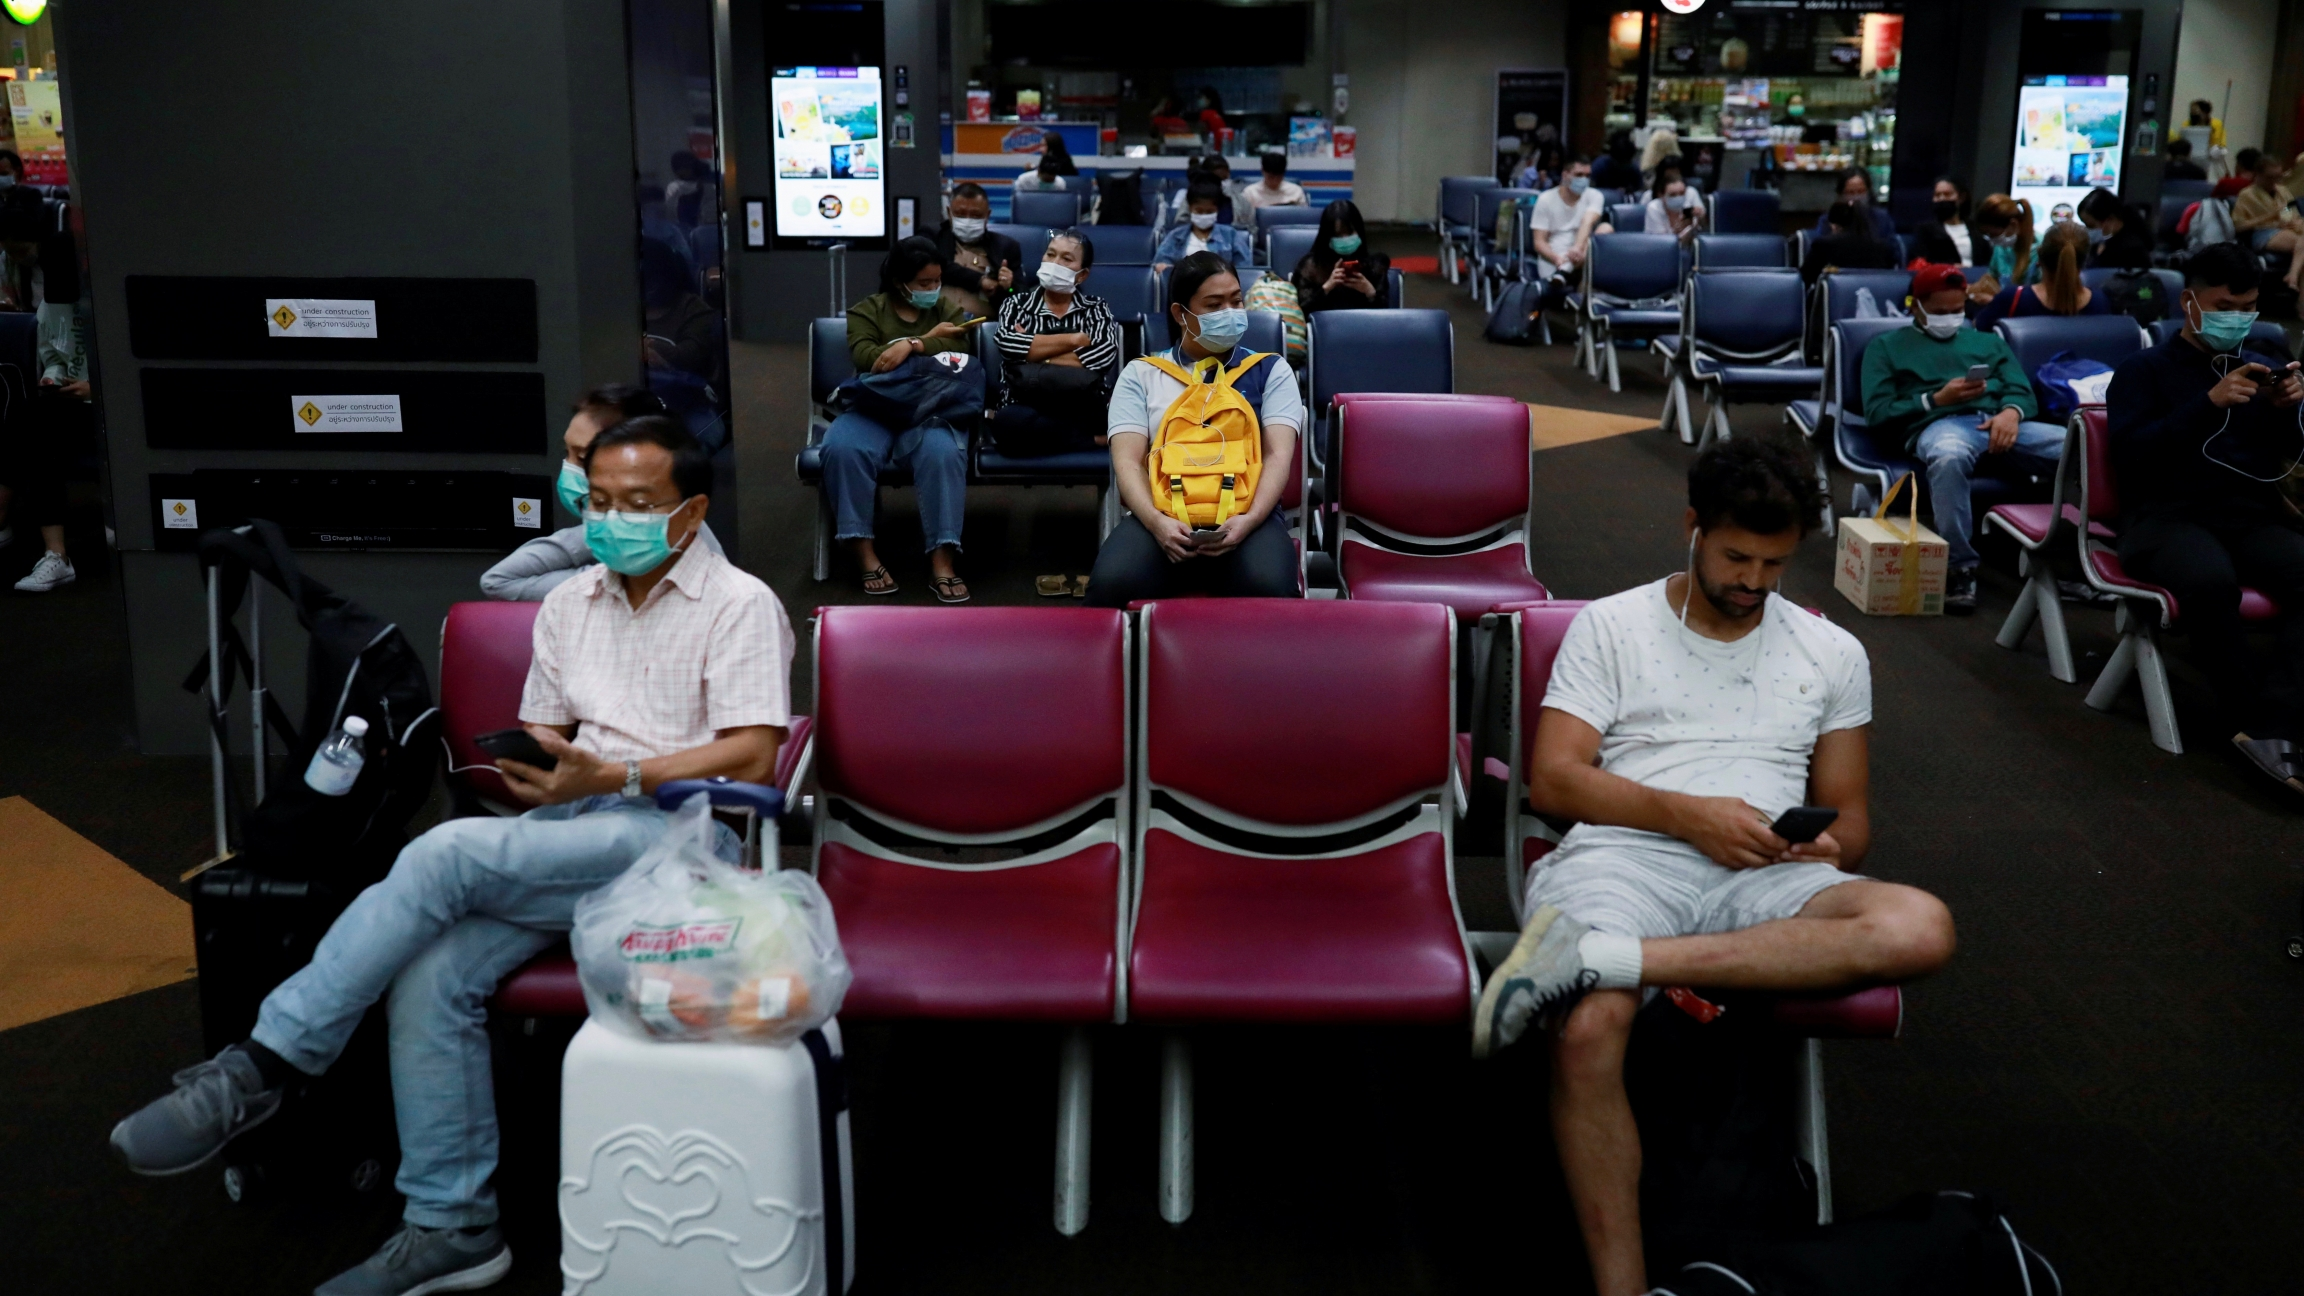 Passengers wear protective masks due to the coronavirus outbreak, at Don Mueang airport in Bangkok, Thailand, March 9, 2020.